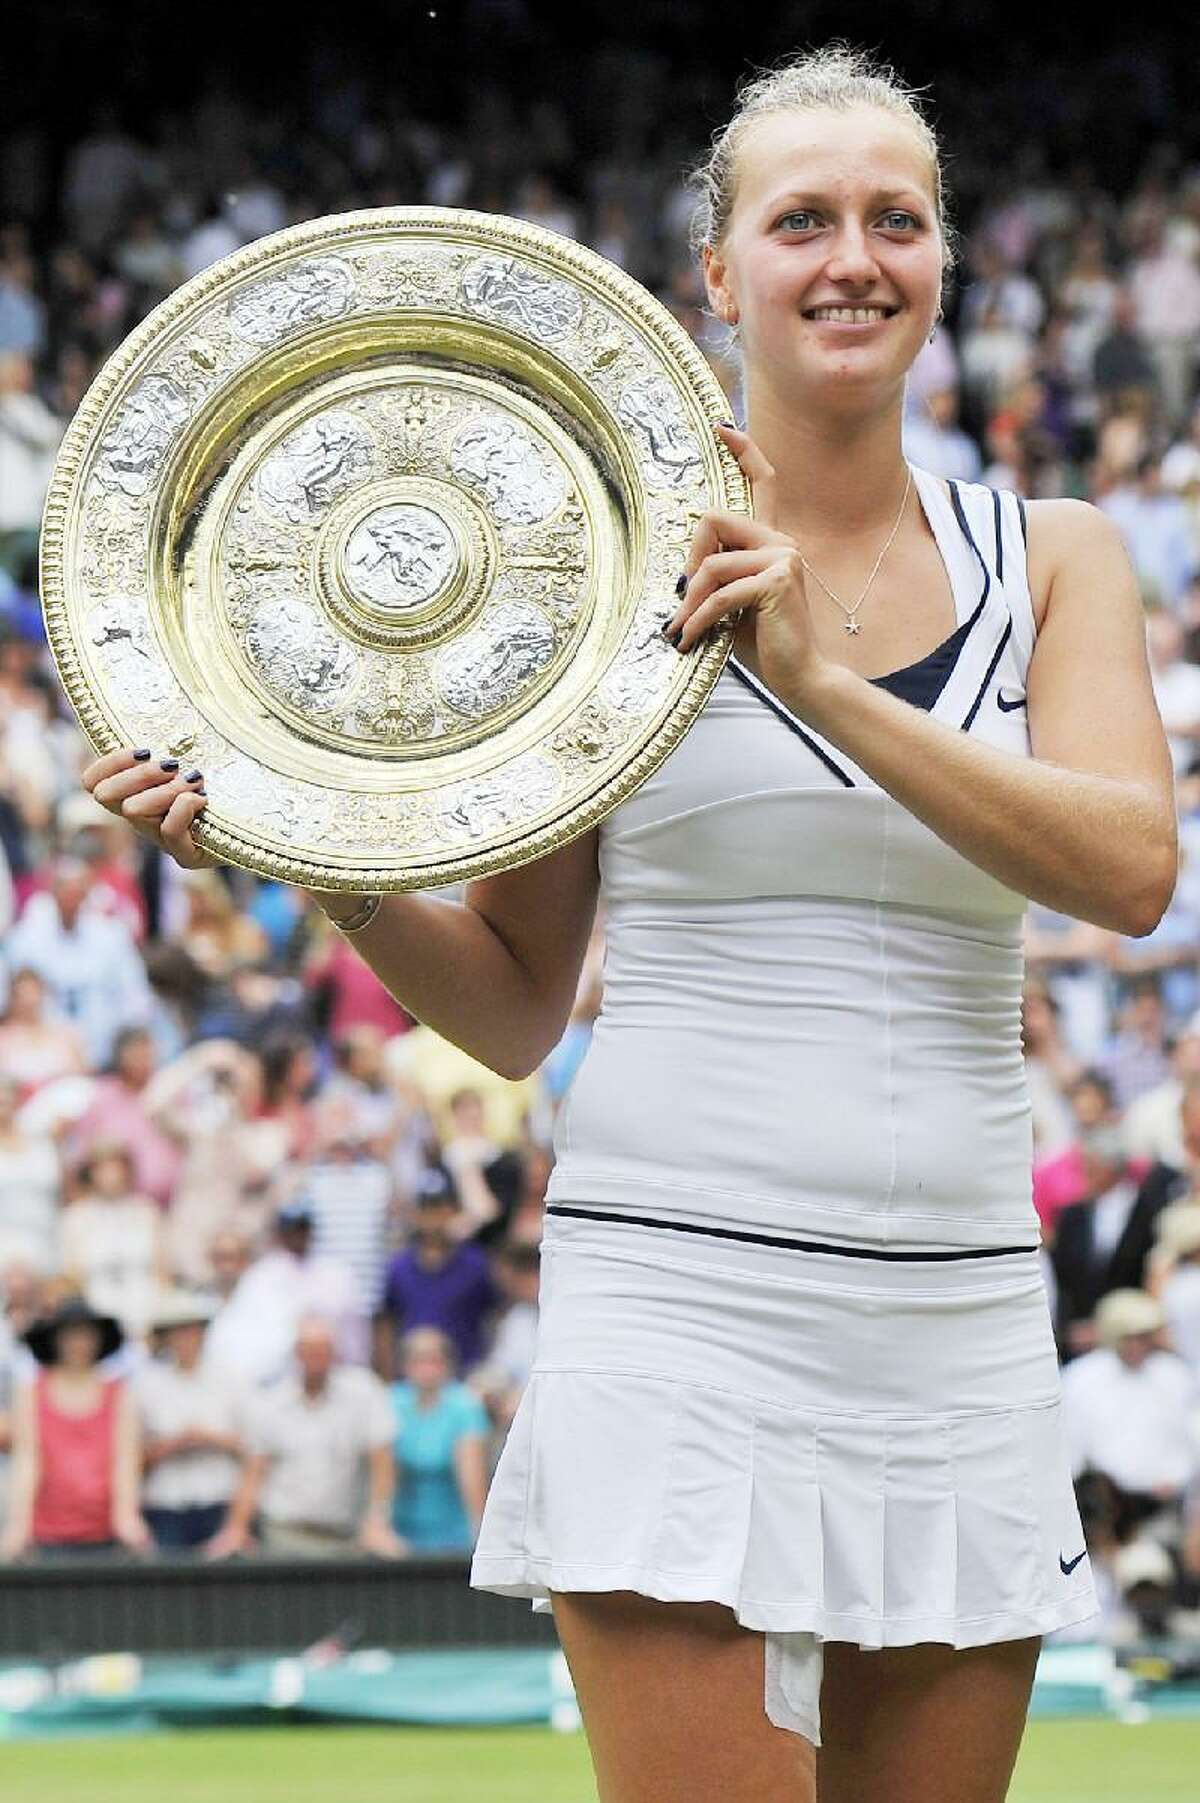 ASSOCIATED PRESS Petra Kvitova stuns Maria Sharapova by beating her 6-3, 6-4 in the Wimbledon women's final Saturday at The All England Lawn Tennis and Croquet Club.